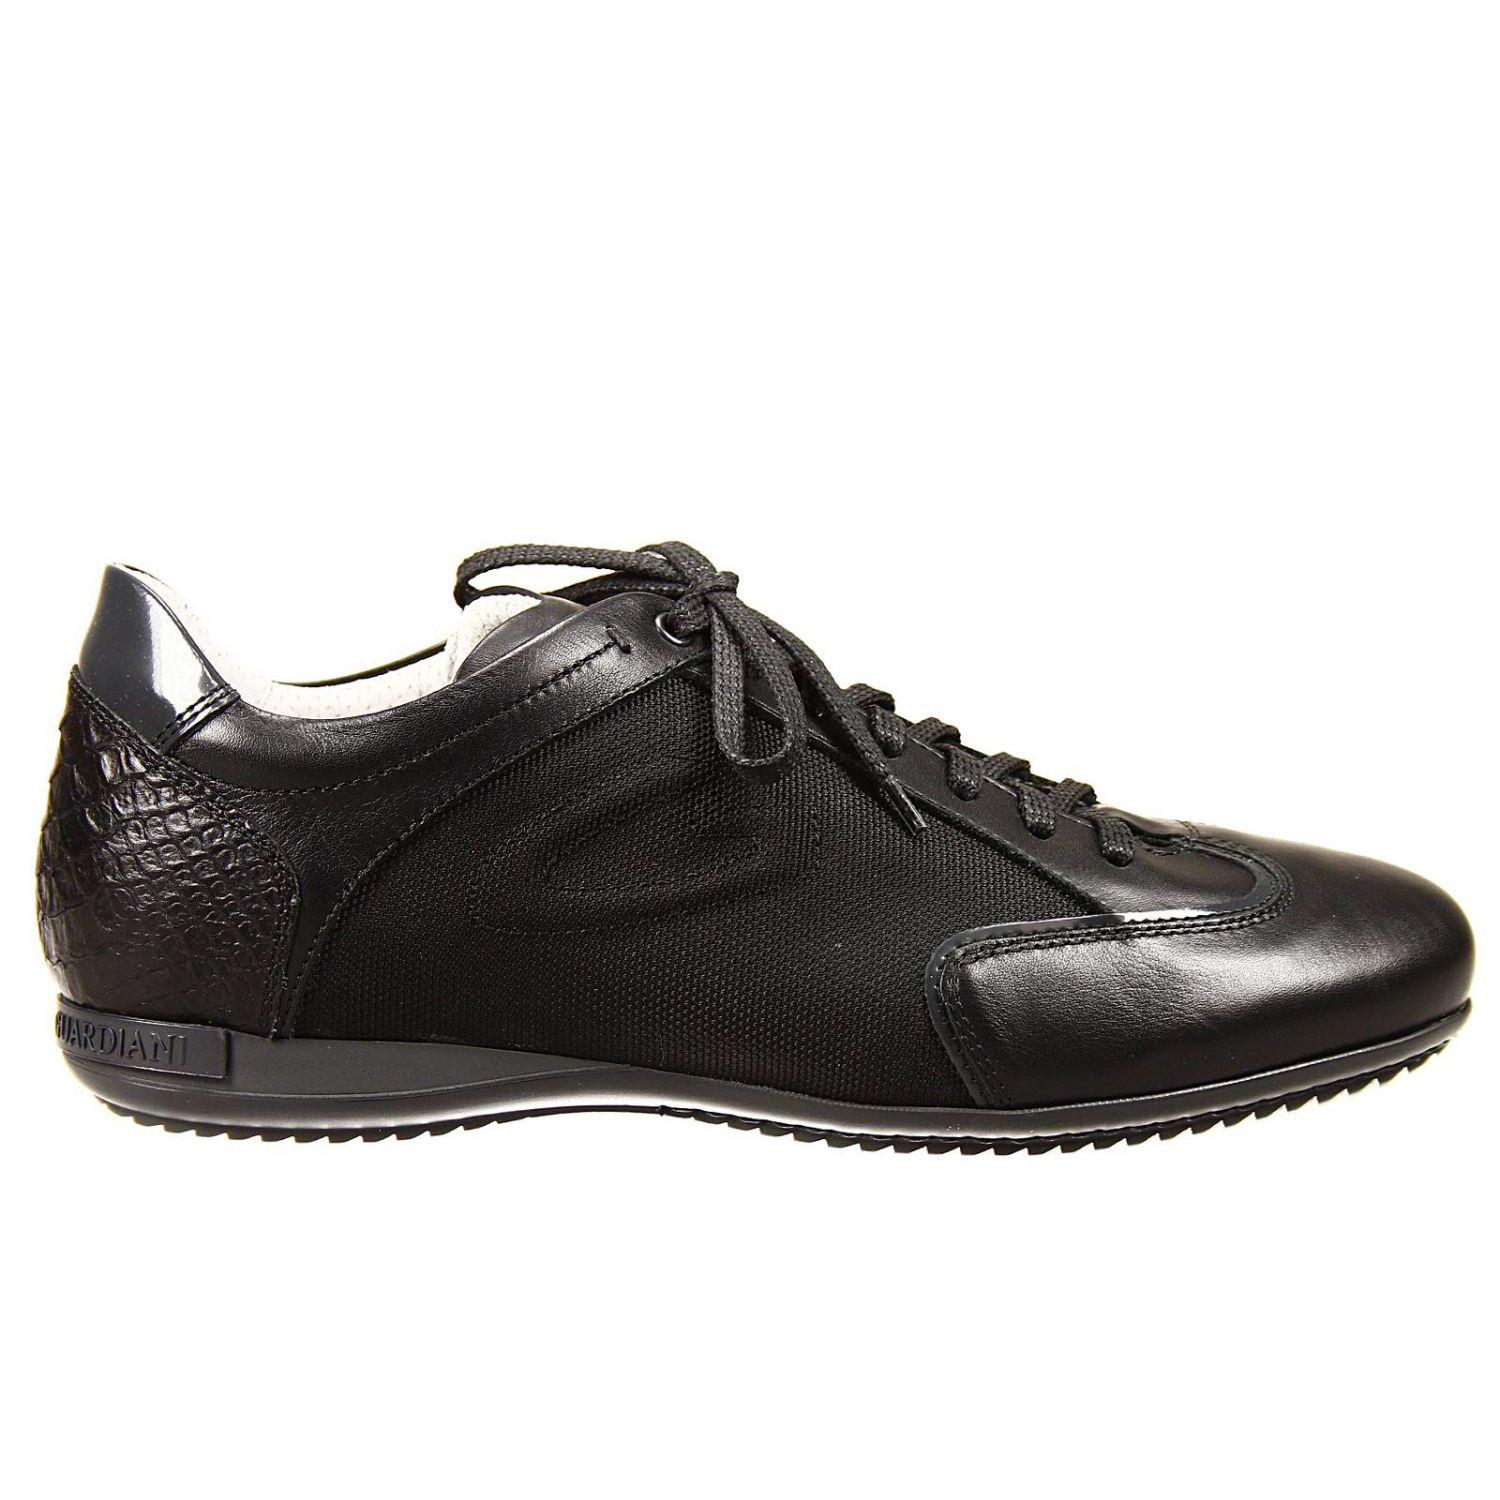 Alberto guardiani Lace Up Shoes Adler Sneaker Leather in